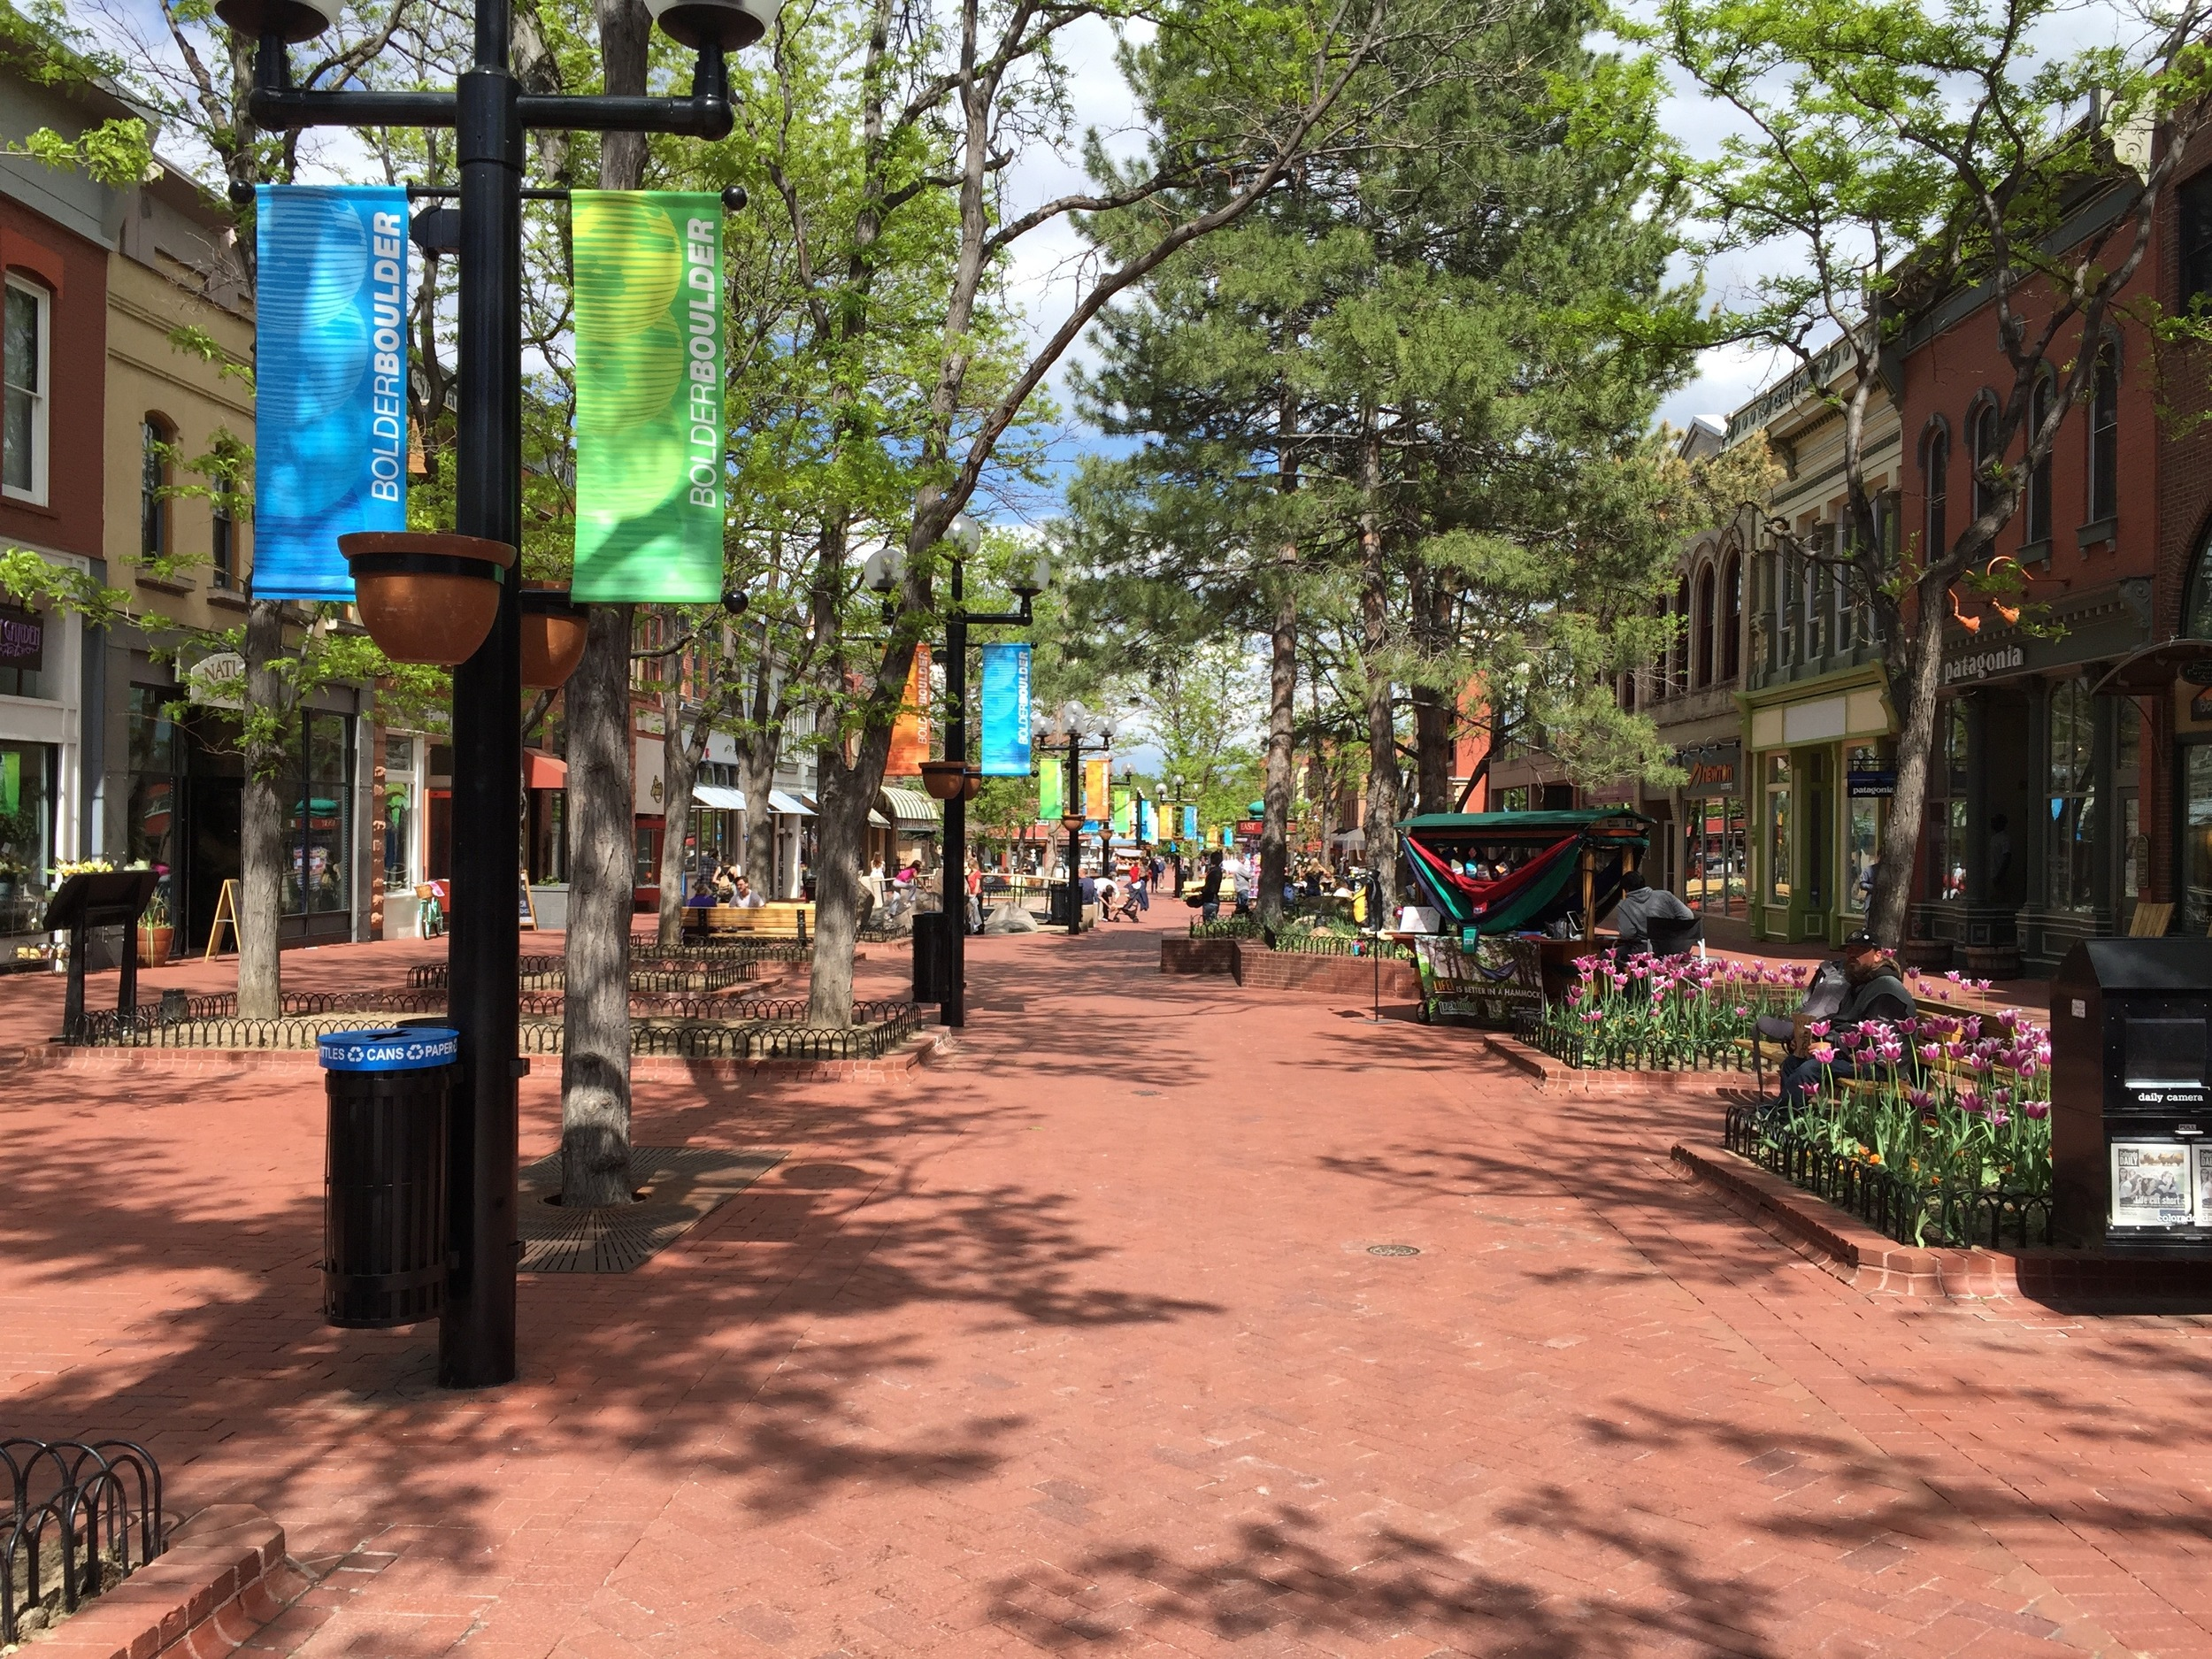 Boulder's downtown Pearl Street Mall offers 4 blocks of traffic-less wining, dining and shopping opportunities.